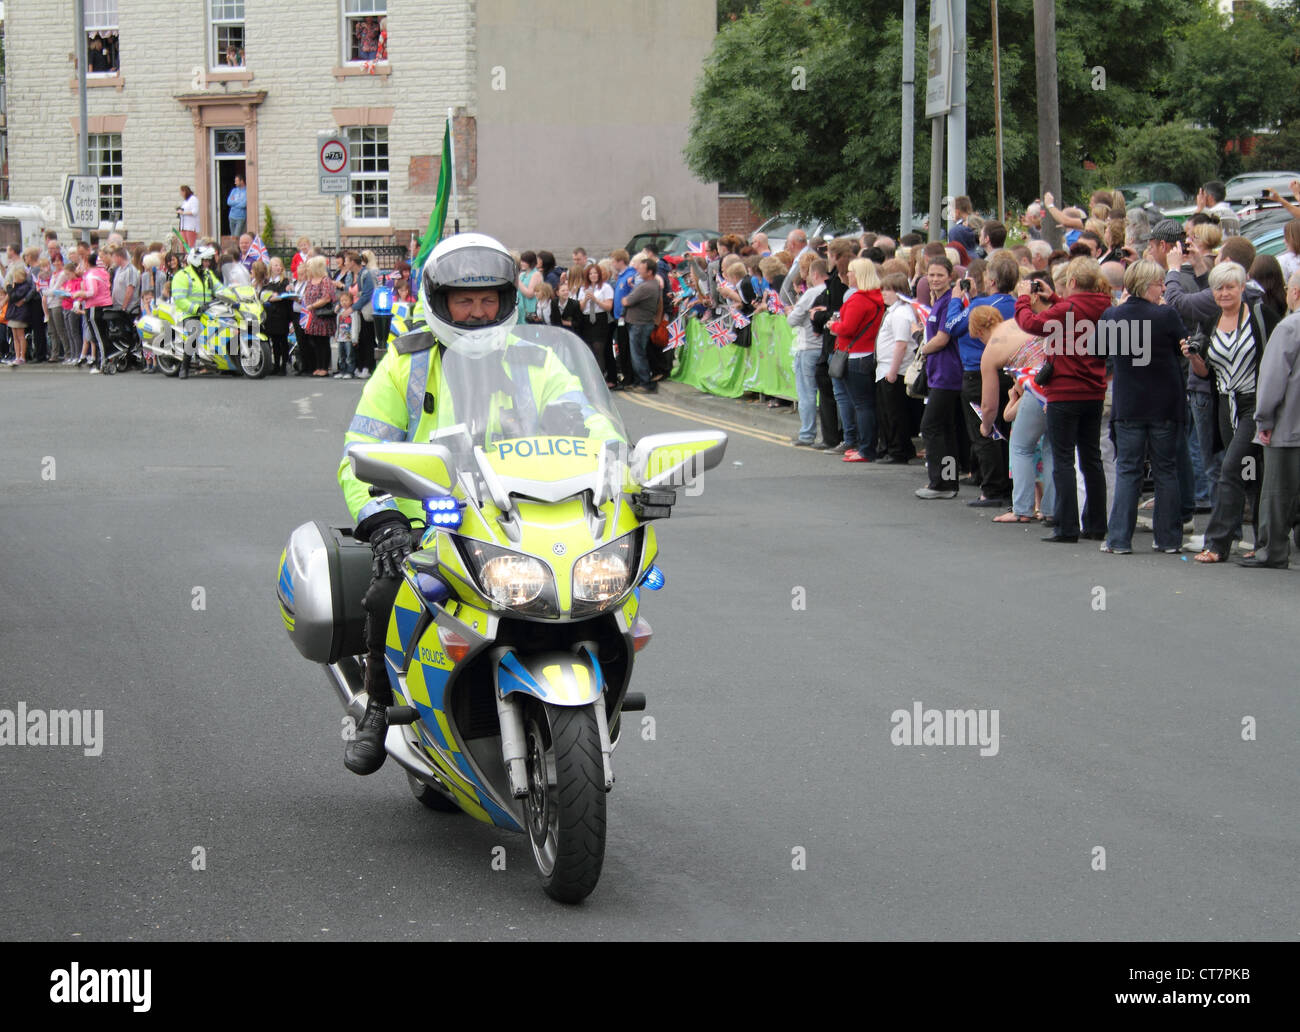 a UK police motorcycle outrider and crowds of people - Stock Image